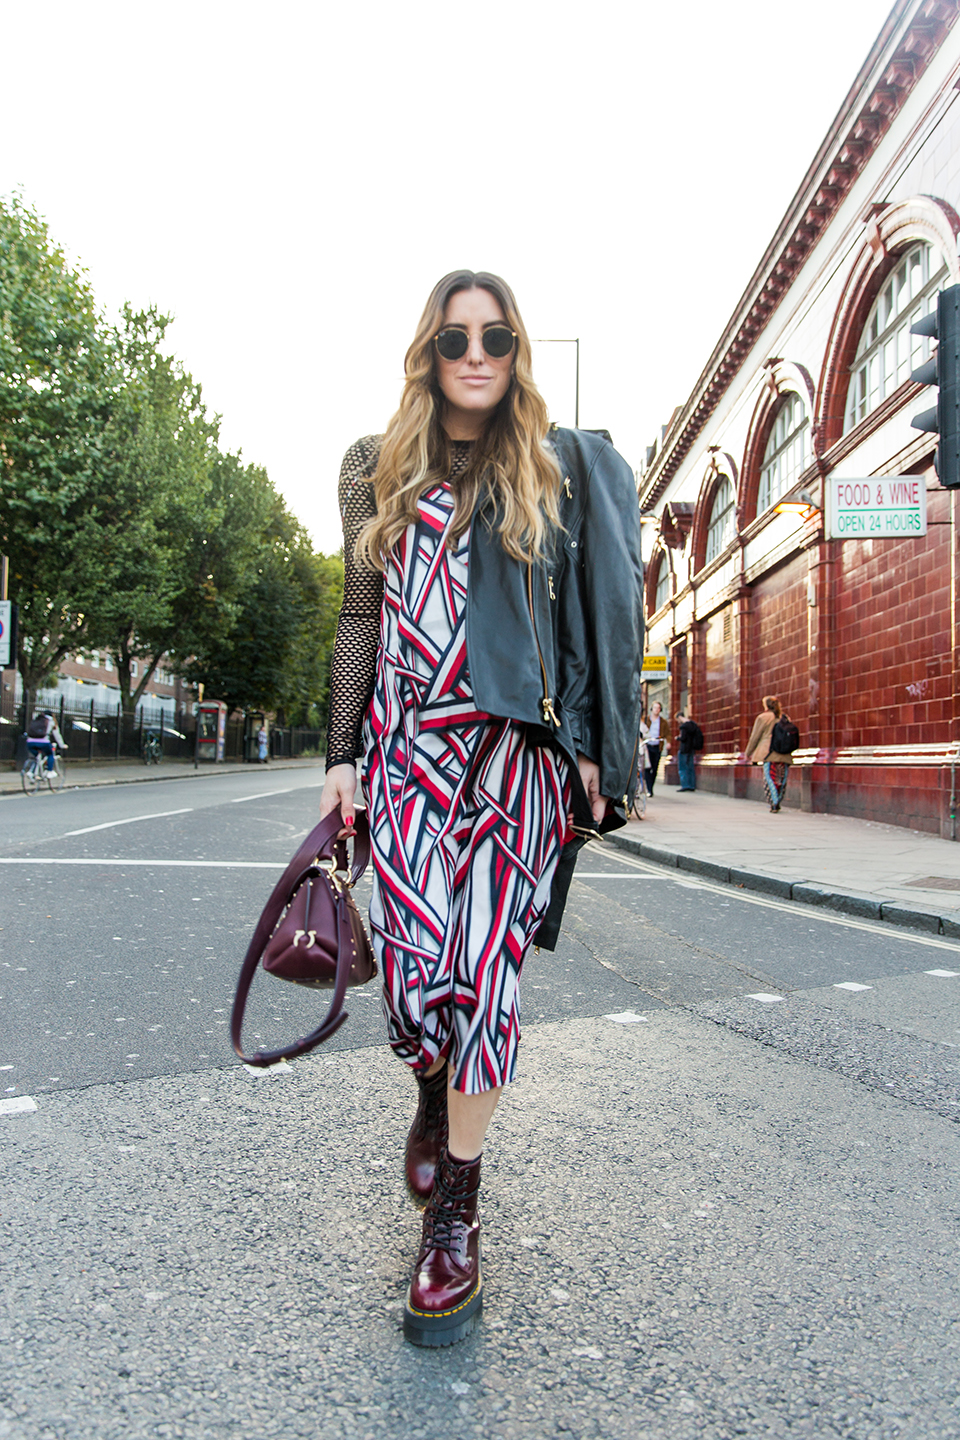 london, fashion week, my philosophie, sofia lascurain, style, london, london fashion week,